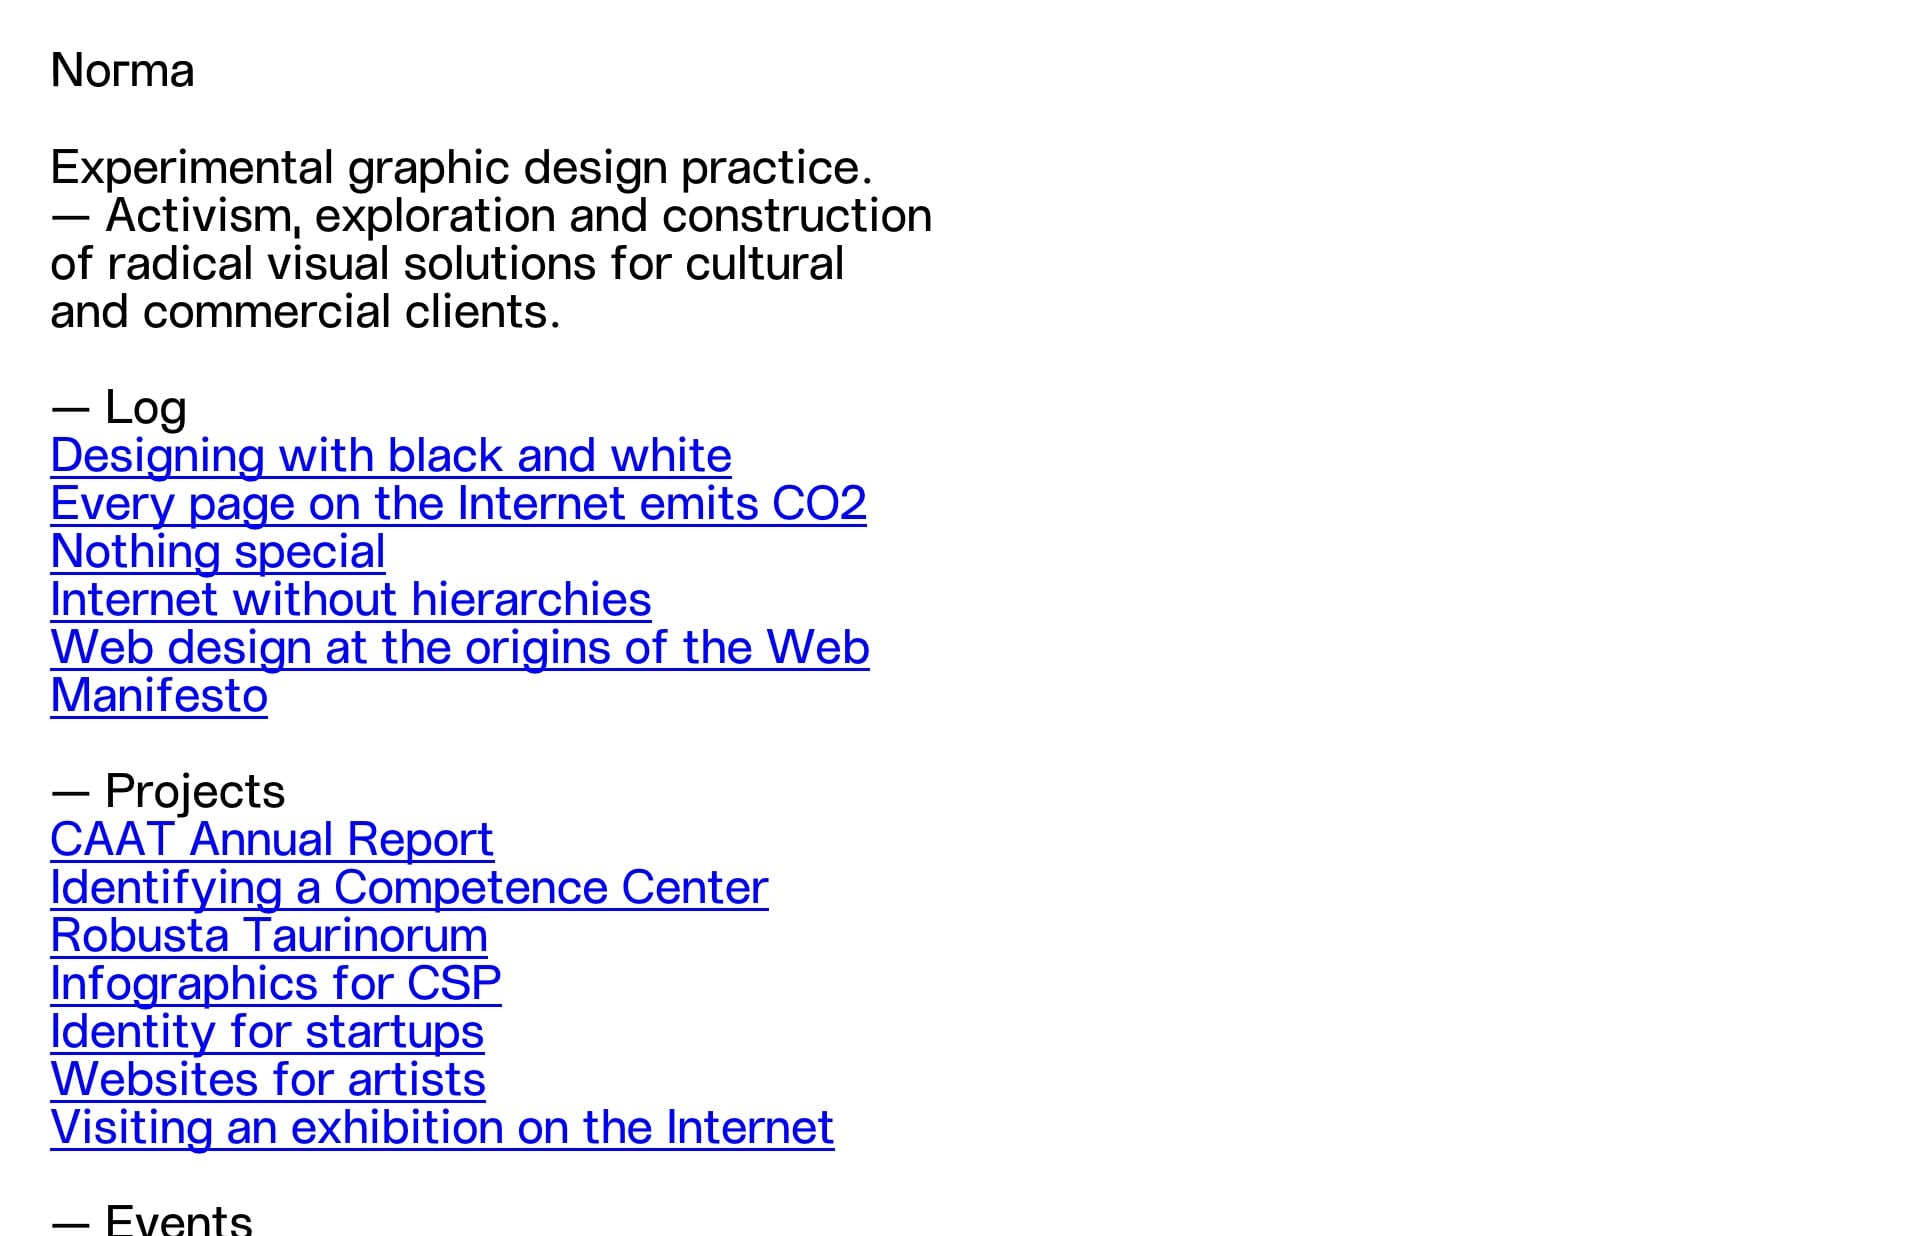 Screenshot of the website Norma, featured on The Gallery, a curated collection of minimal websites